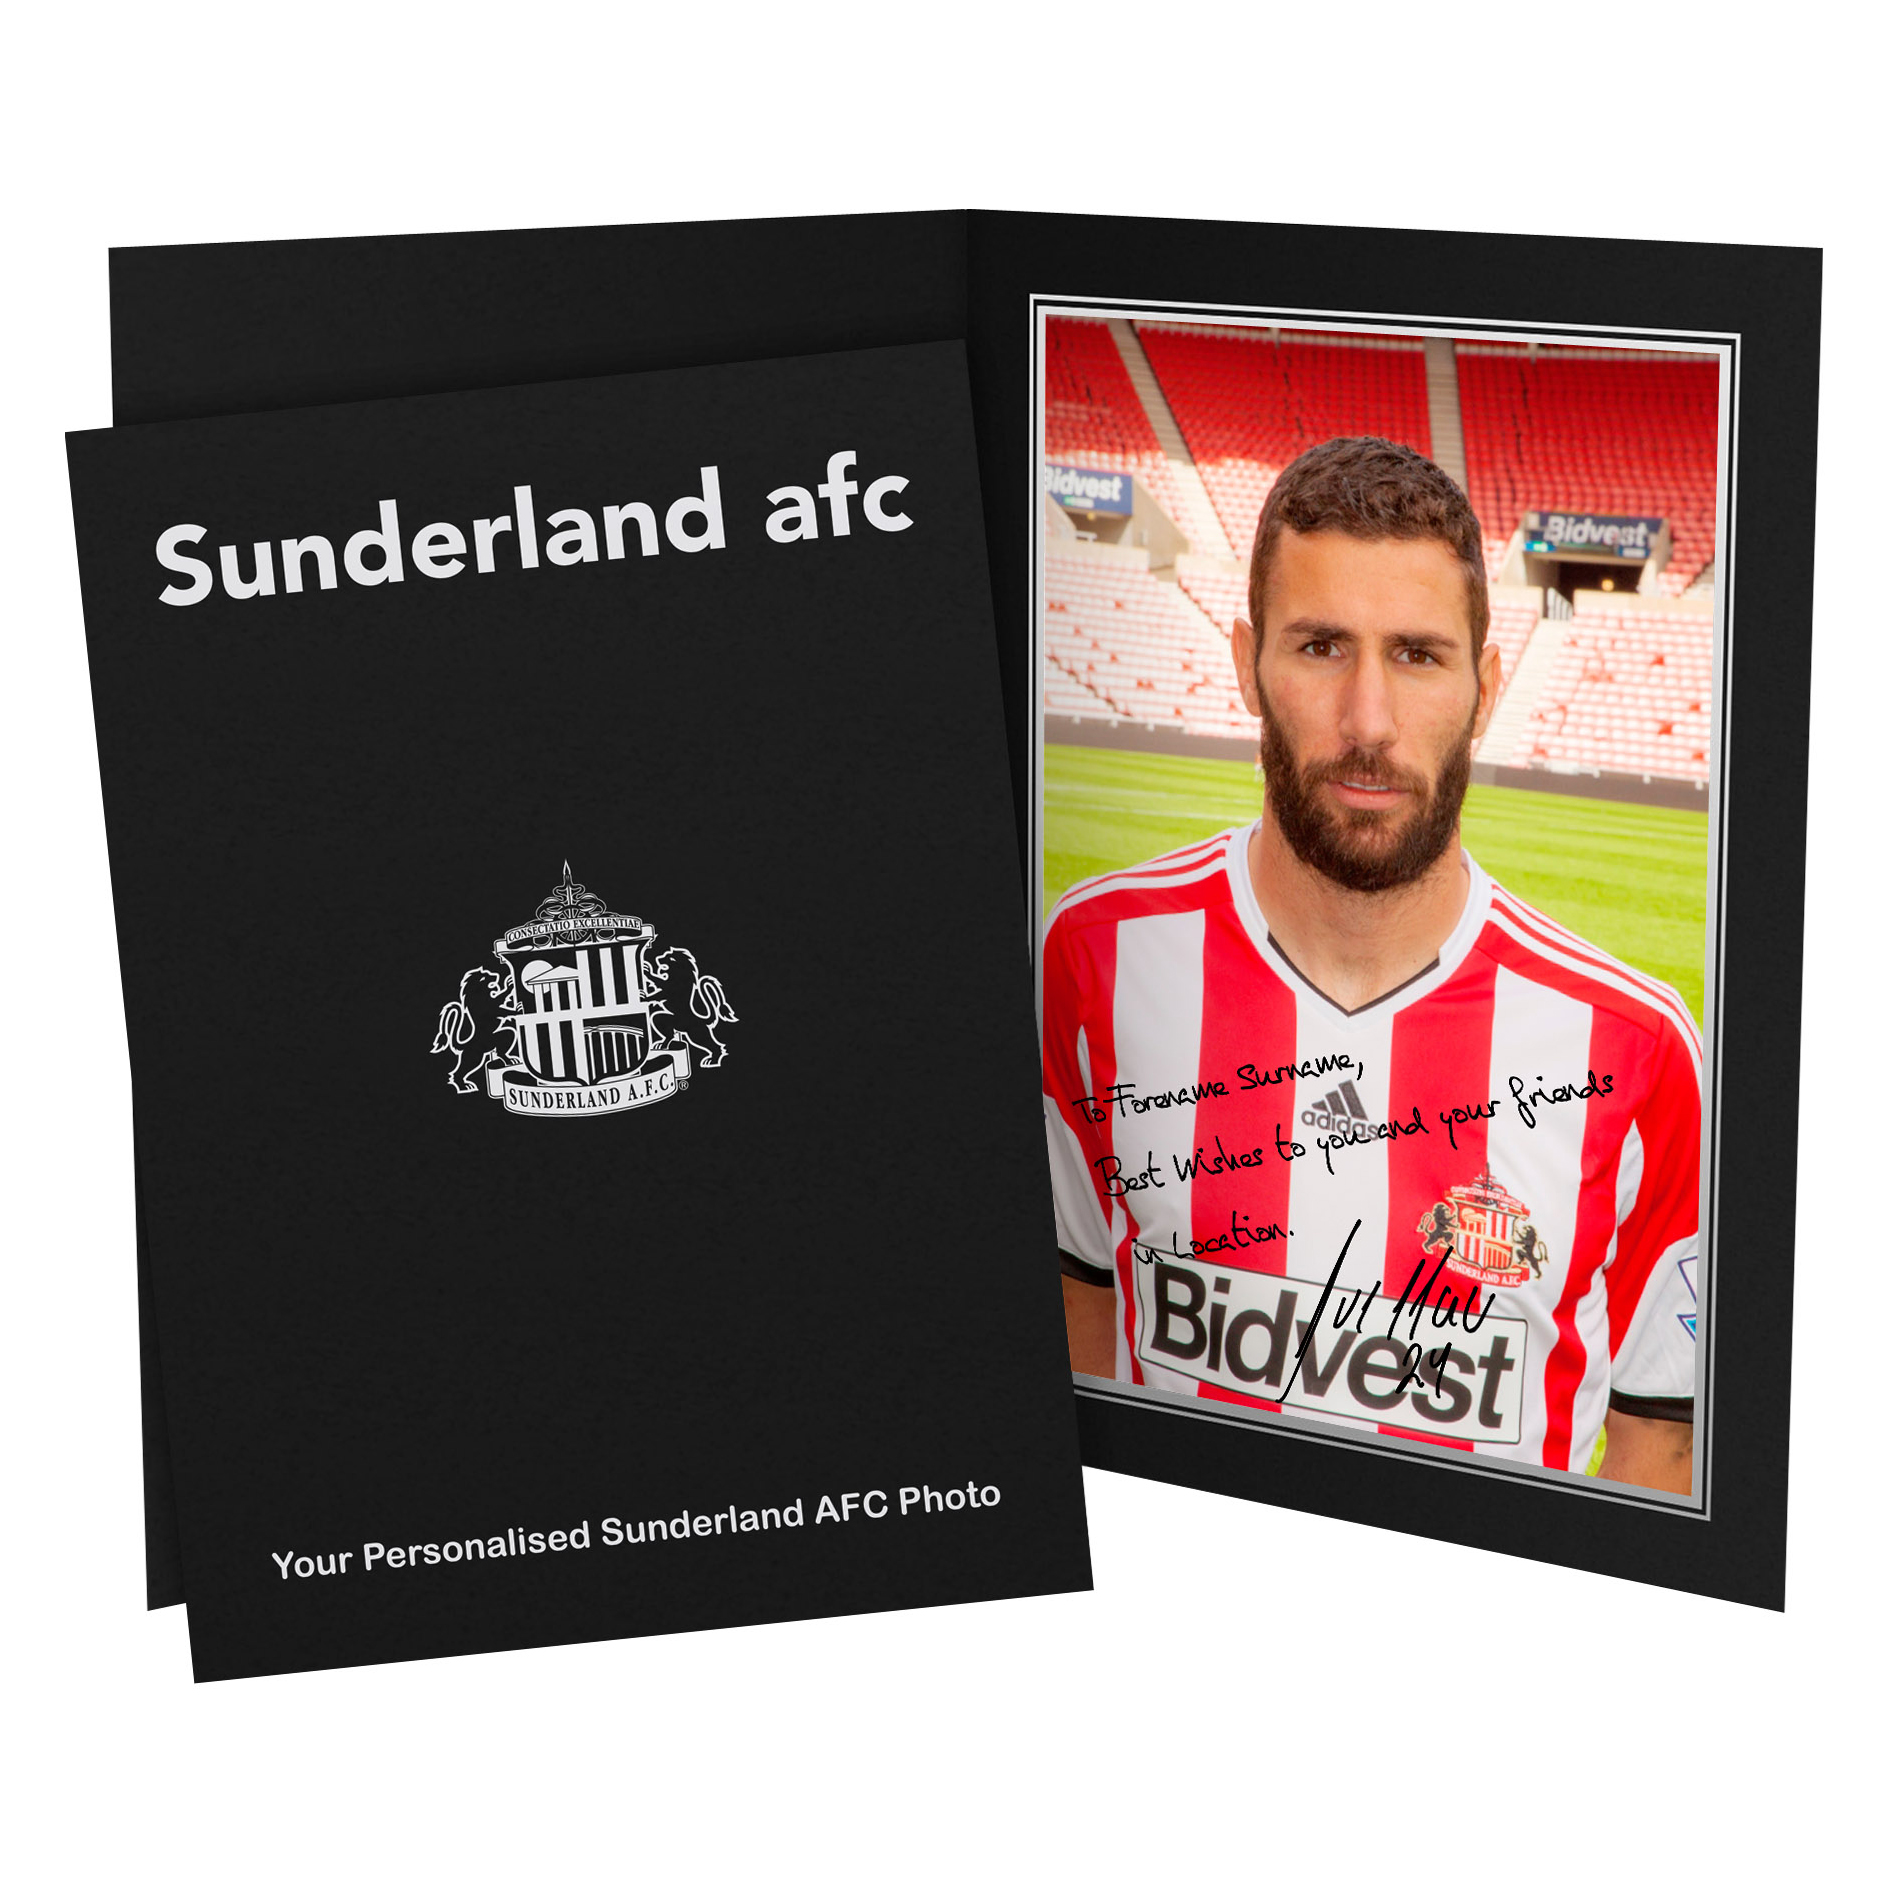 Sunderland Personalised Signature Photo in Presentation Folder - Cuellar